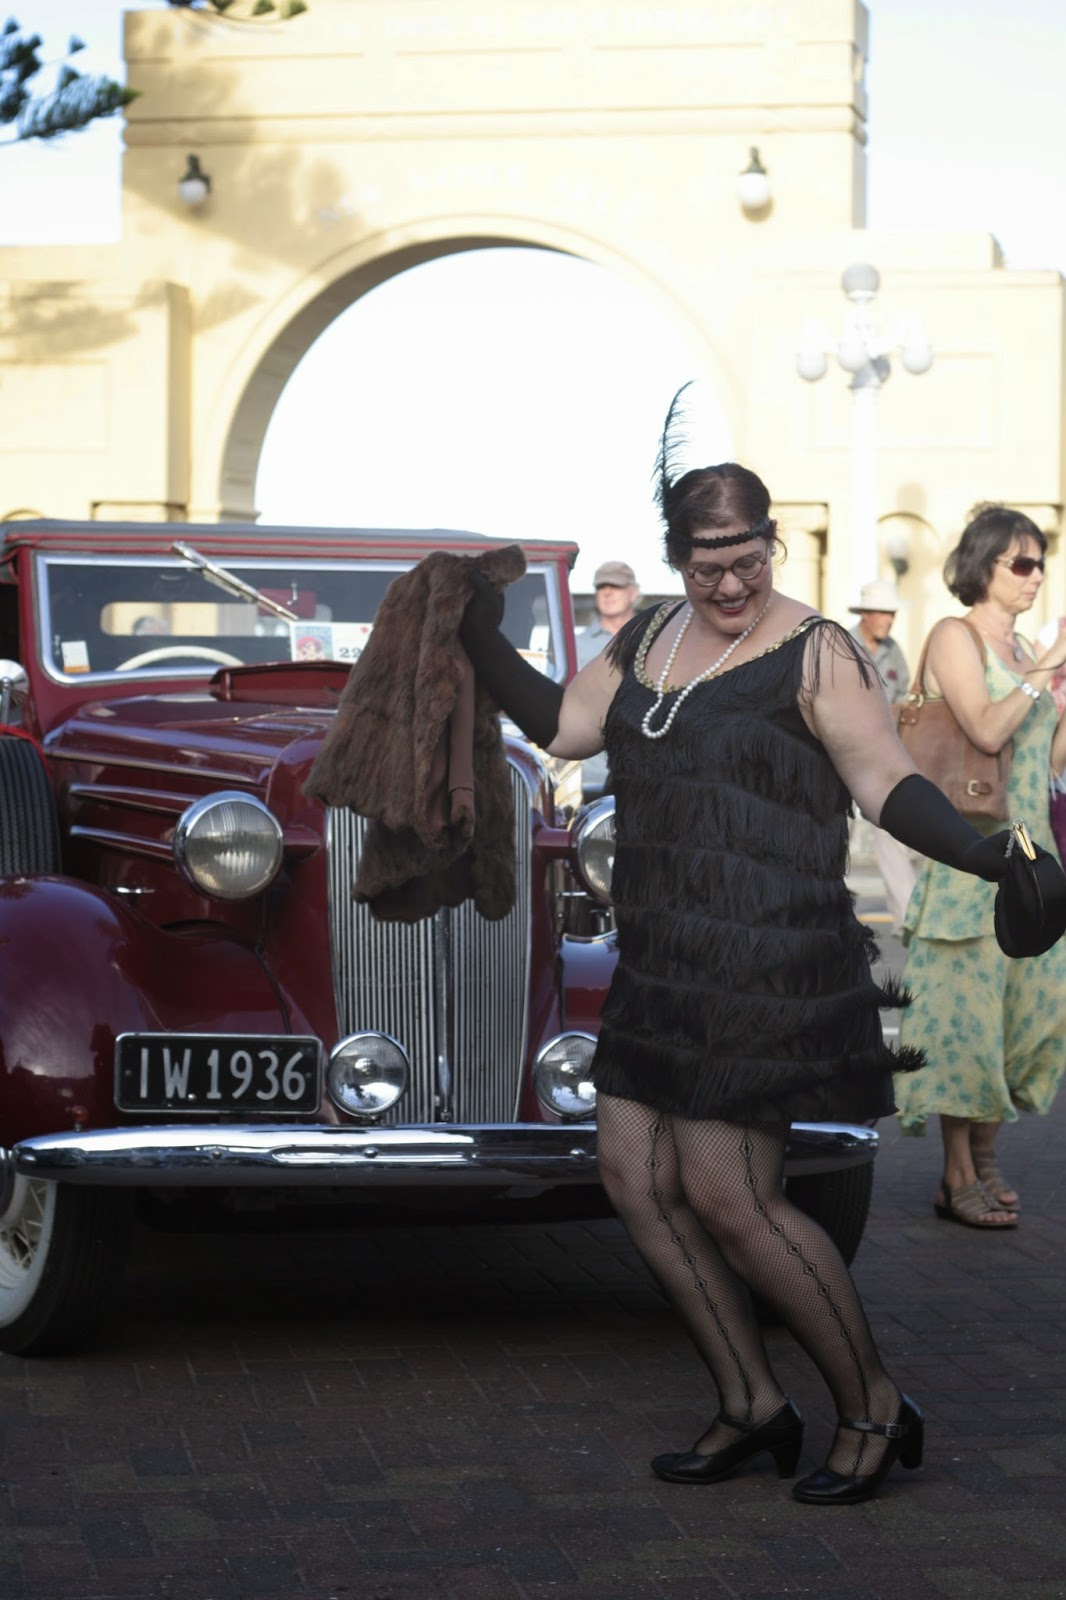 Me in a black flapper's costume, with fringing and a headband. I have fishnets and carry a fur.